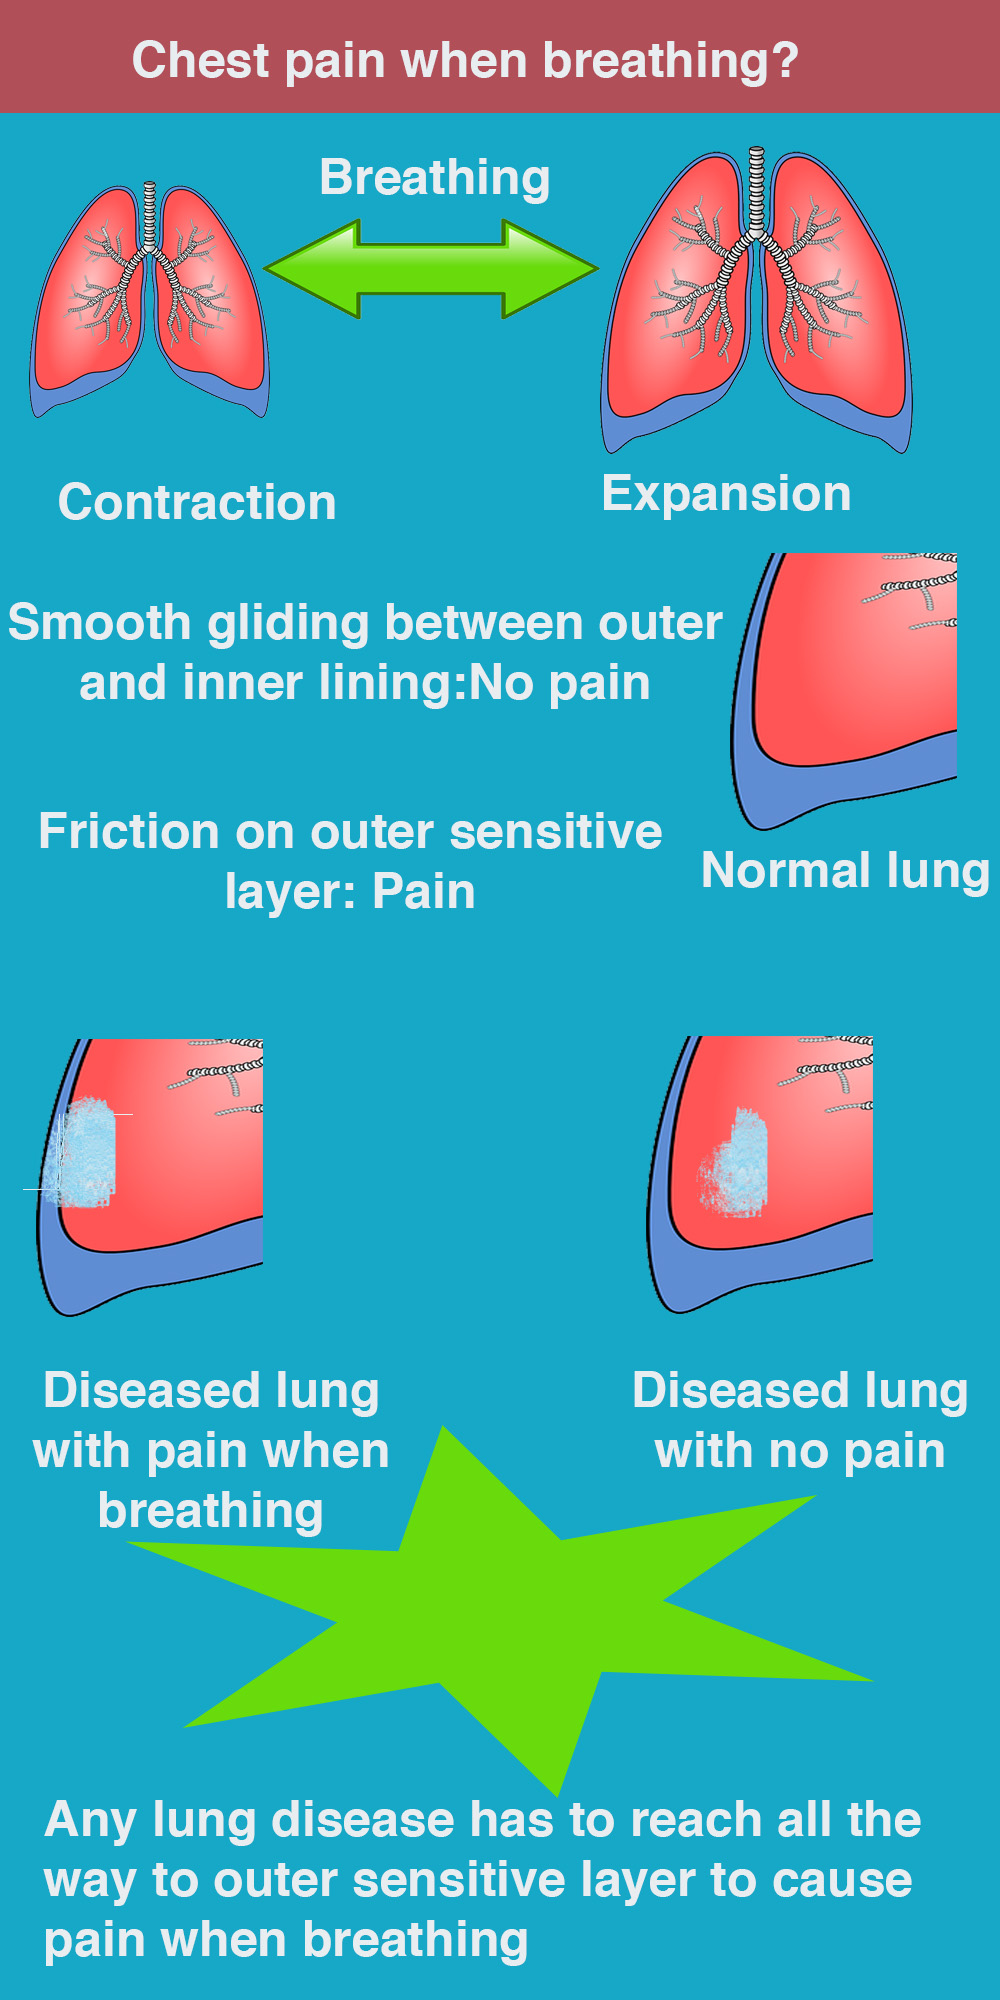 Chest pain when breathing infographic